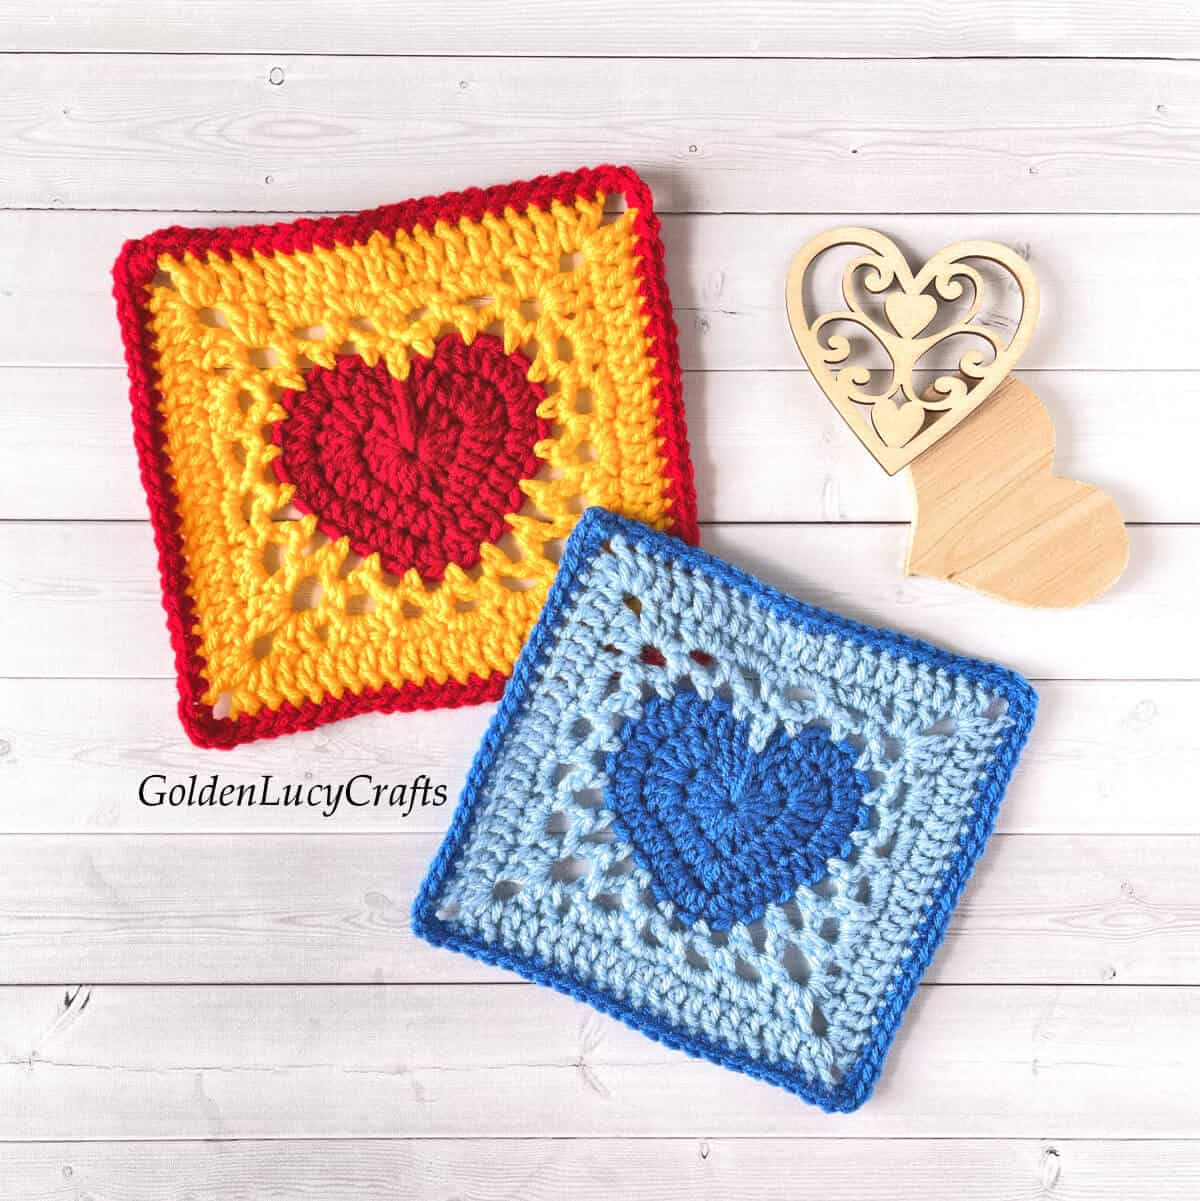 Two crocheted granny squares with heart in the middle of each.